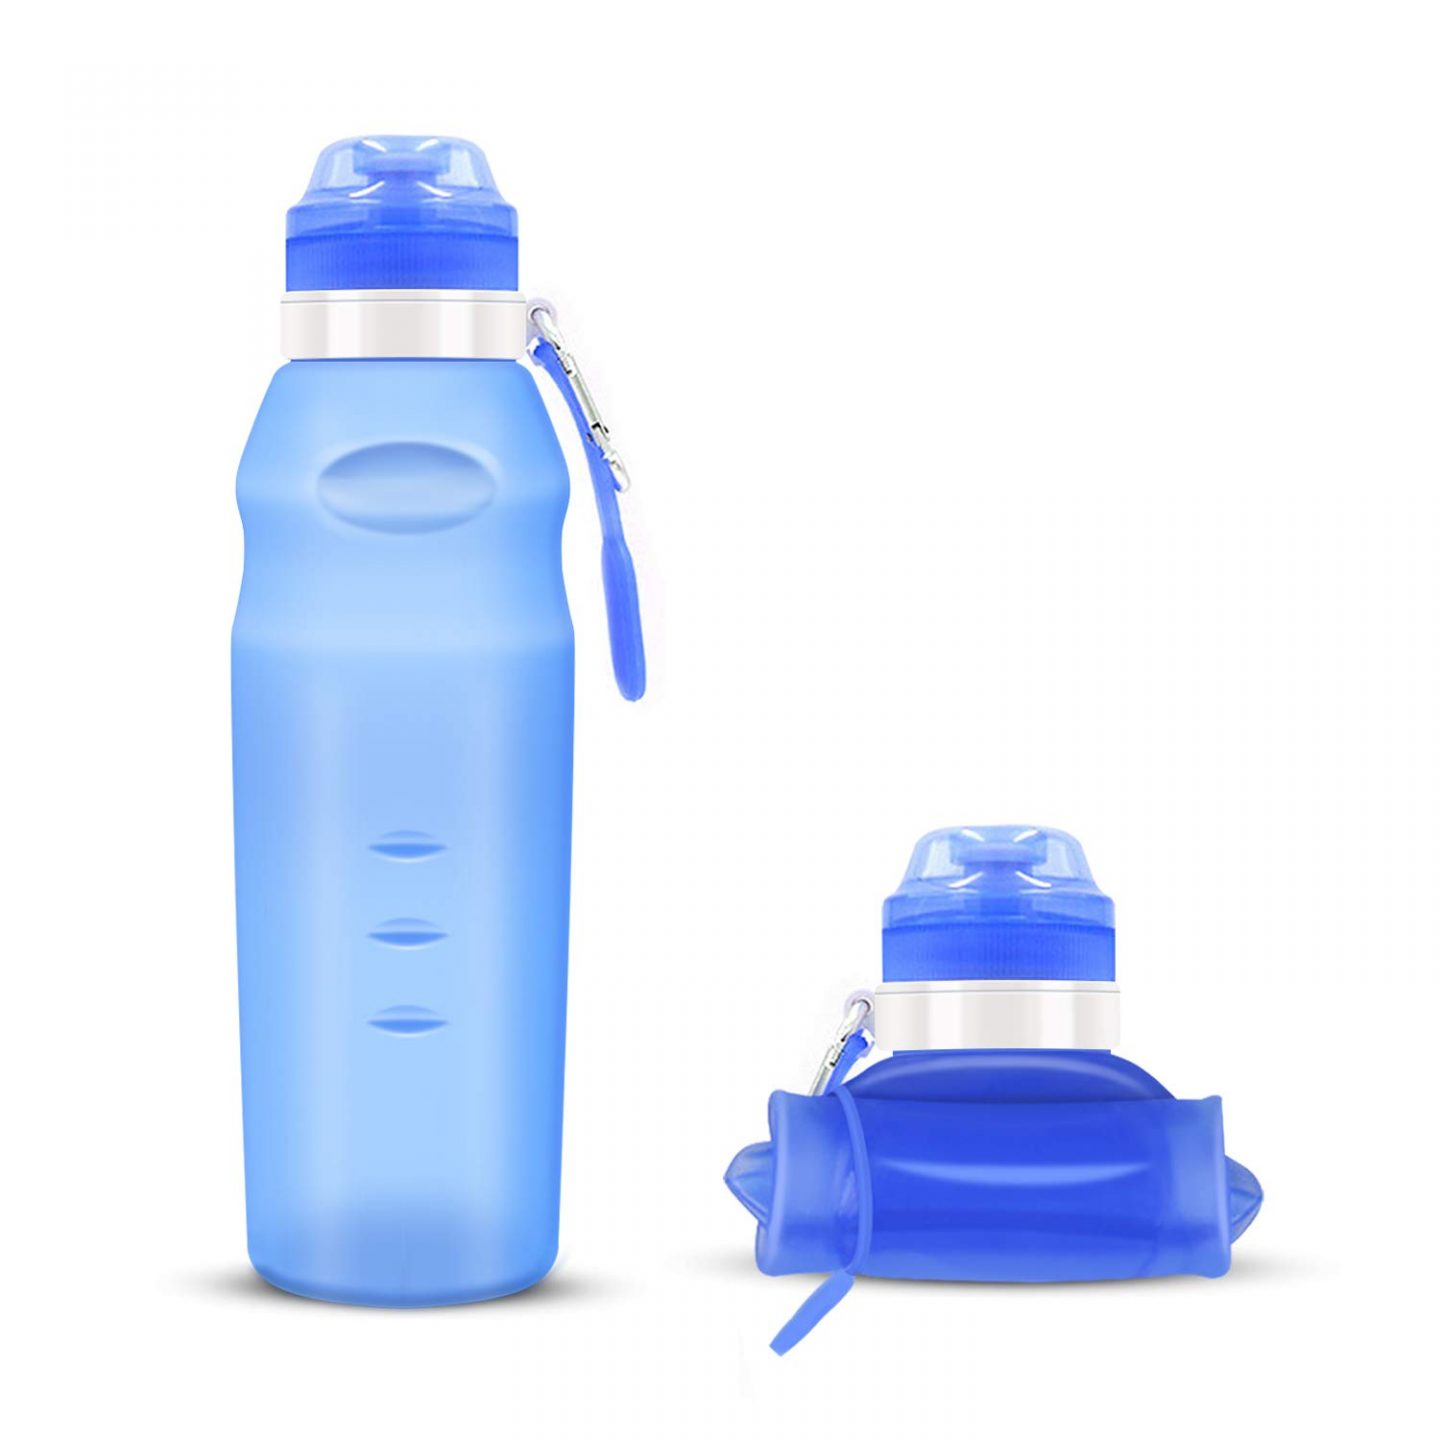 Houmagic collapsible water bottle for travel